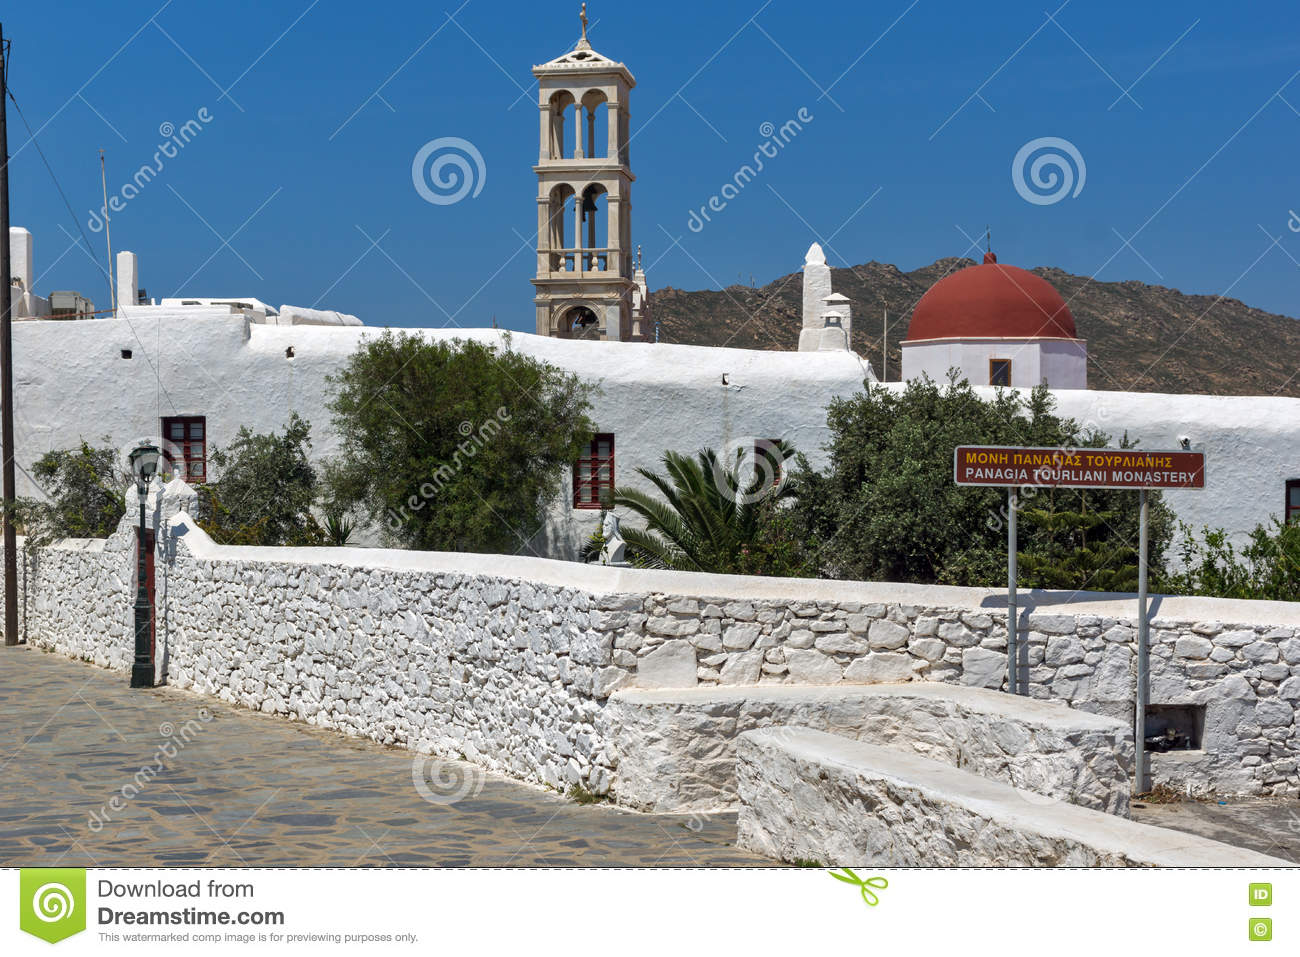 Belfry of of Panagia Tourliani monastery in Town of Ano Mera, island of Mykonos, Greece